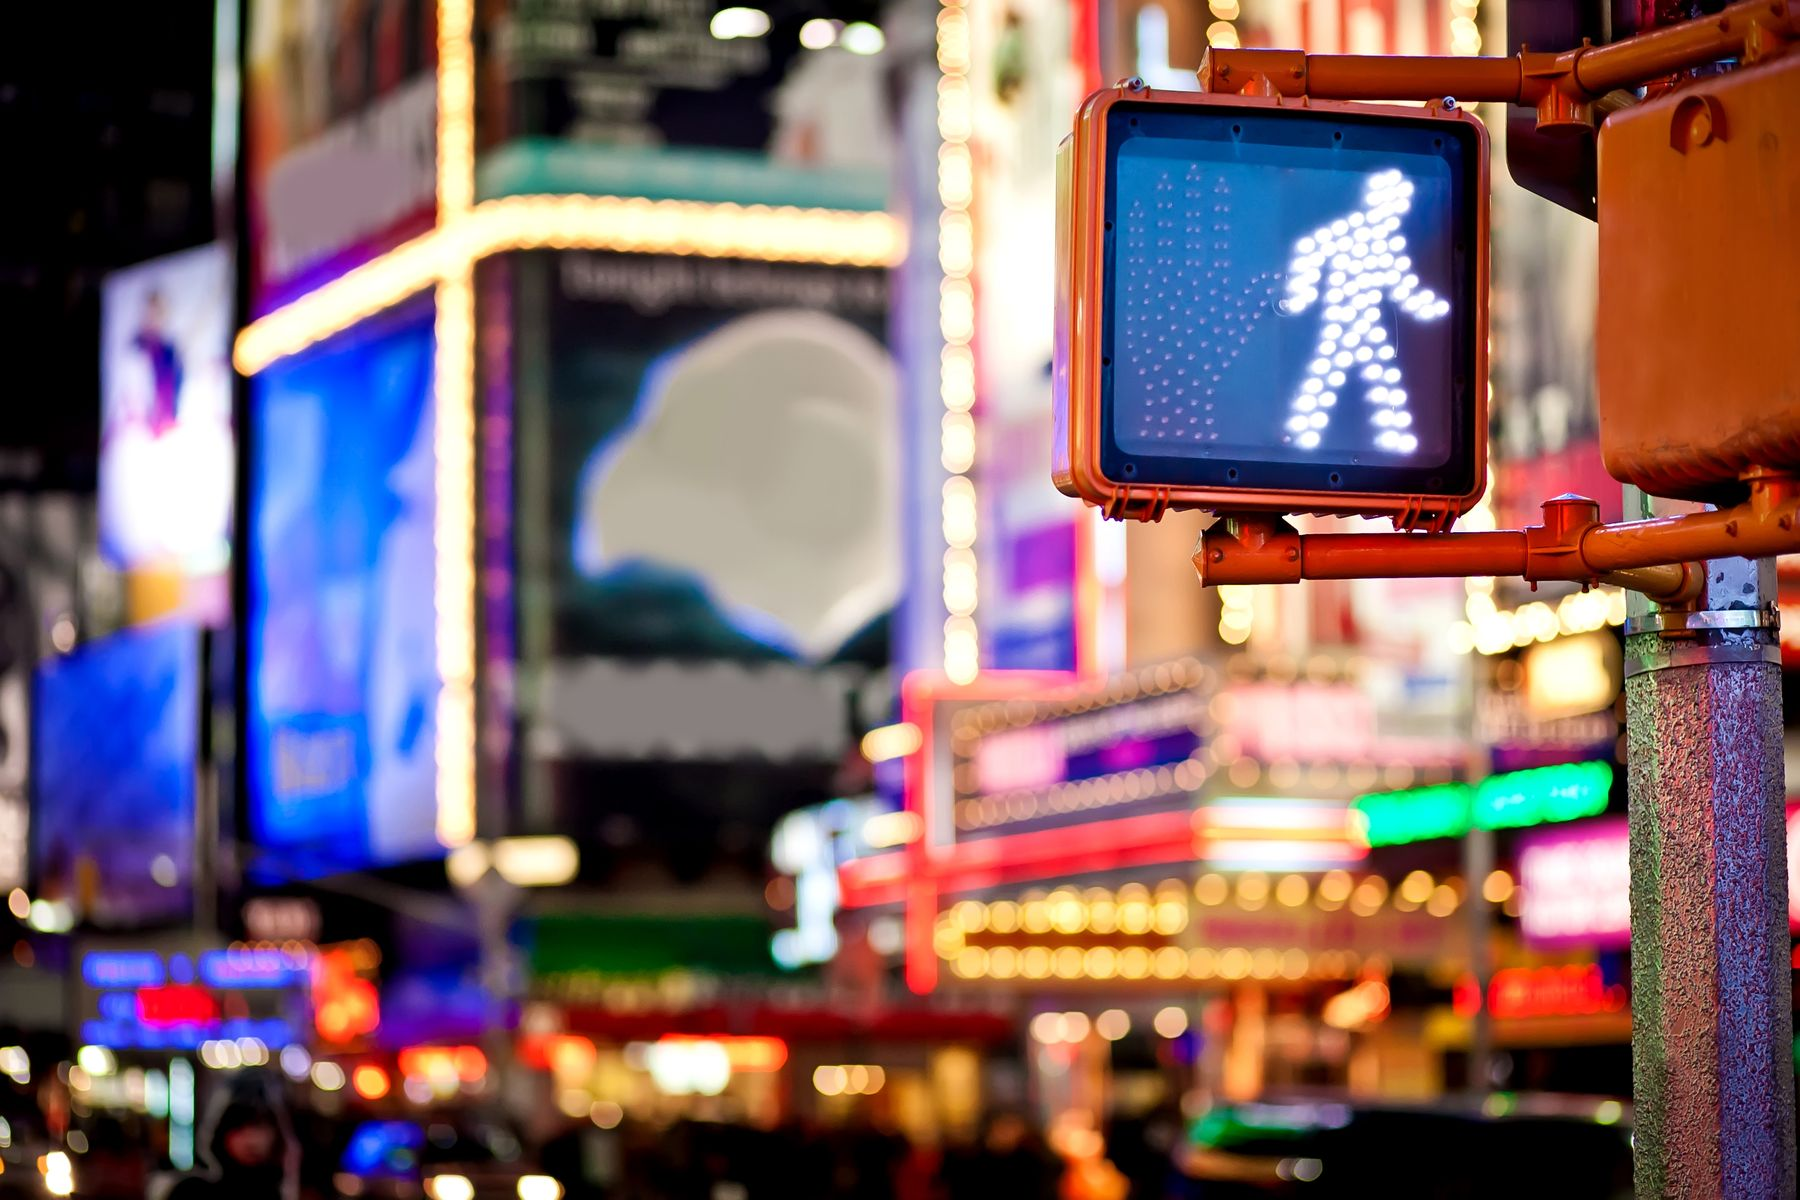 Focus on a pedestrian traffic light, with the bright lights of a big city blurred in the background.